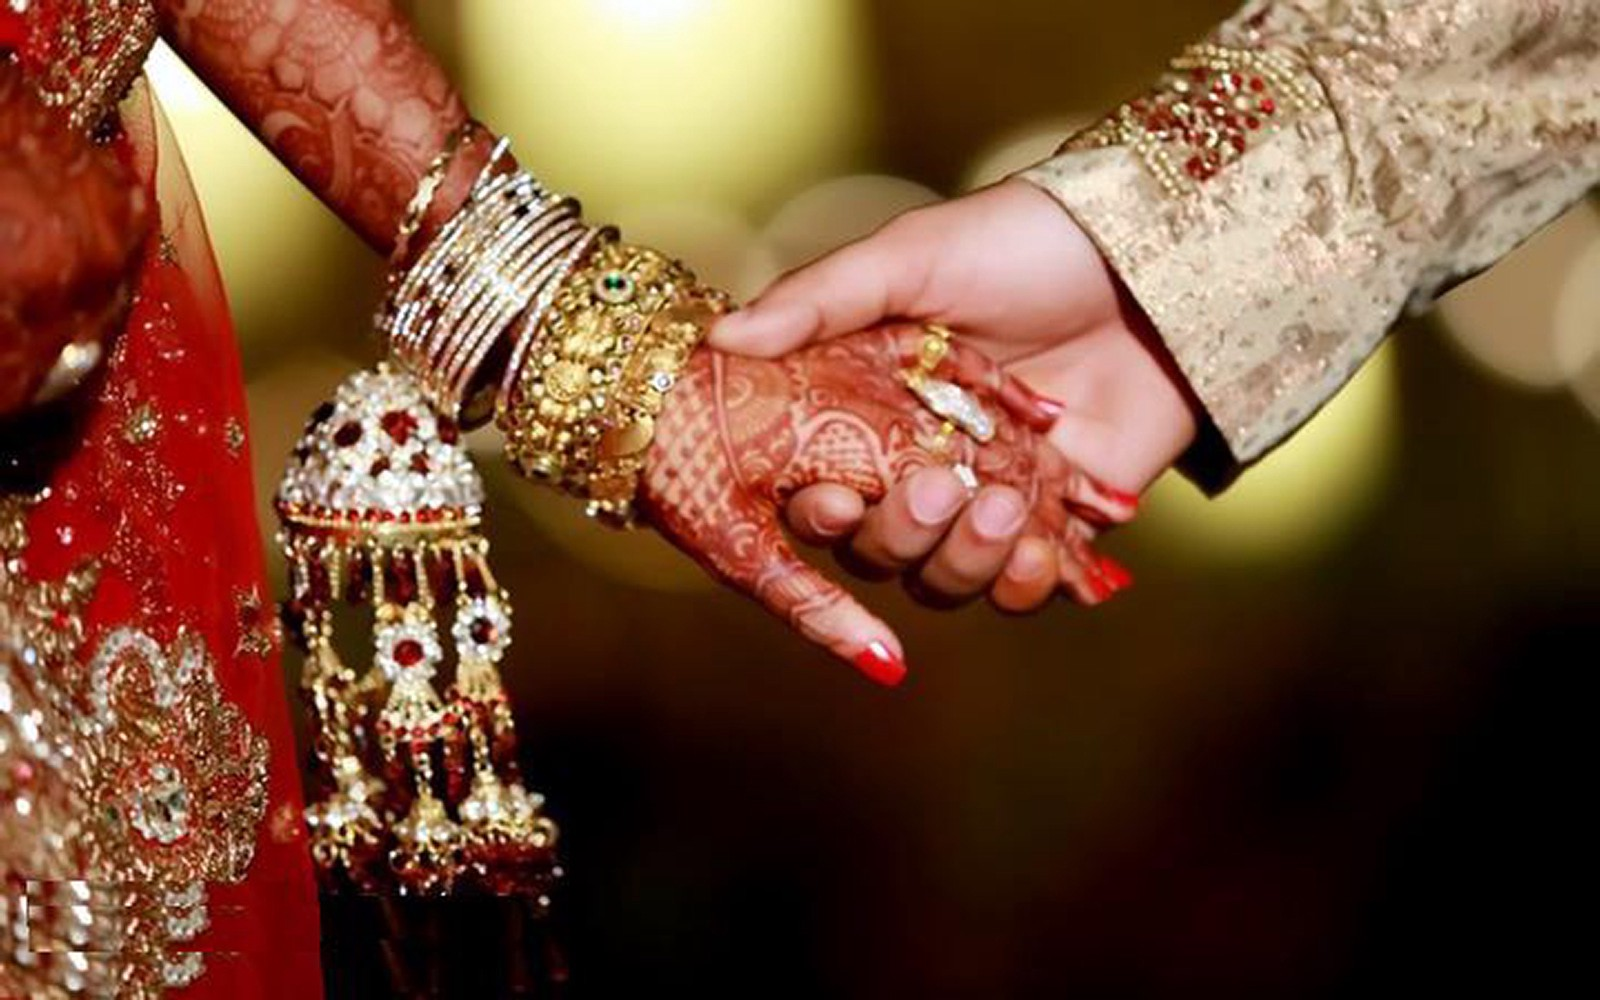 Matrimonial duty - what is it